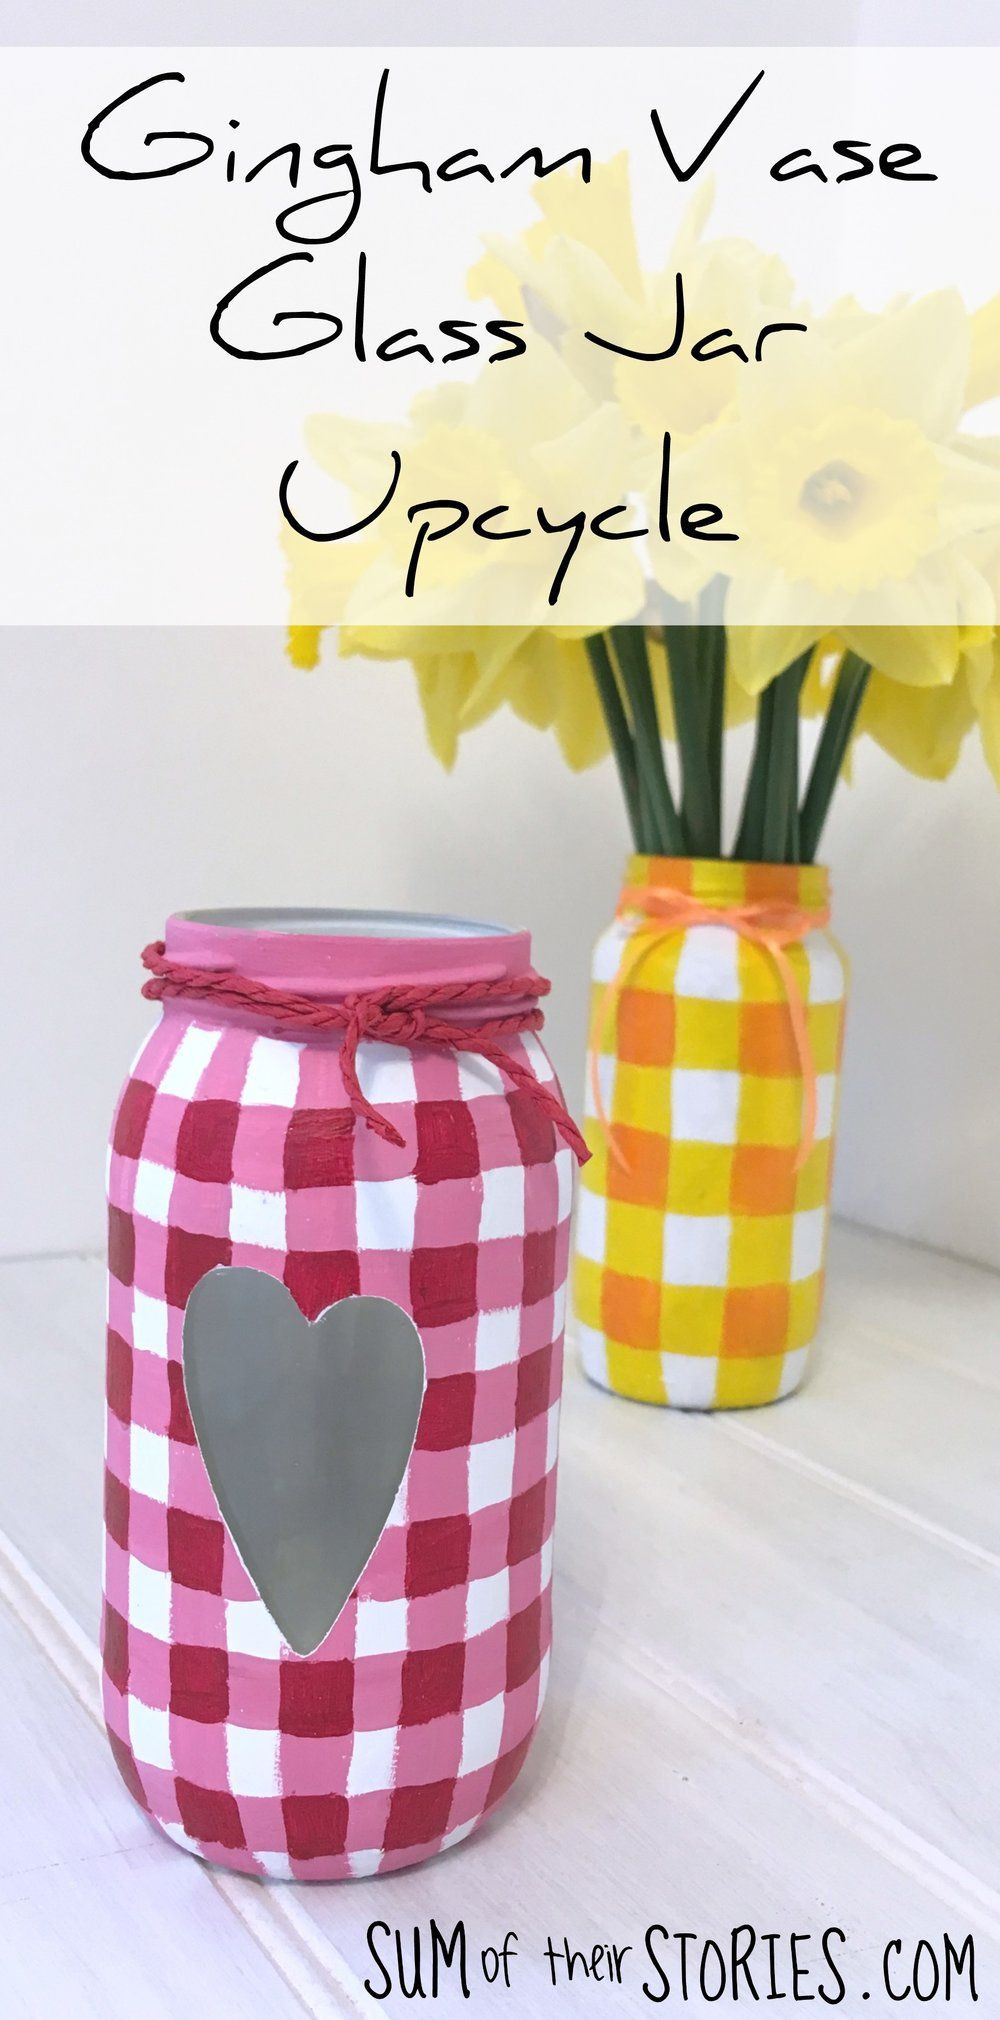 glass jars and vases of gingham vase glass jar upcycle home decorating furniture with gingham vase glass jar upcyle upcycle recycle masonjarcrafts